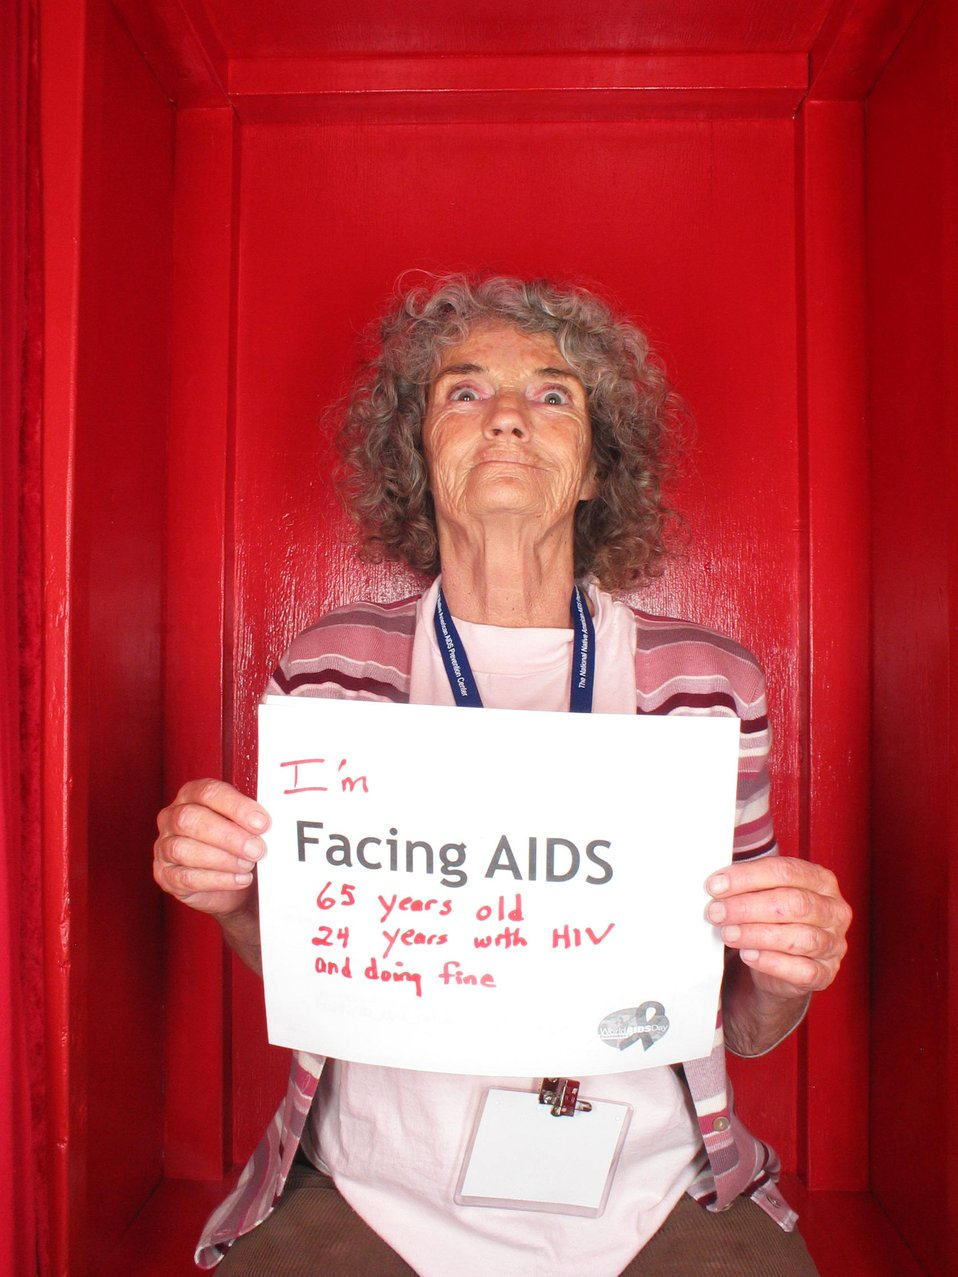 I'm Facing AIDS 65 years old. 25 your with HIV. and doing fine.